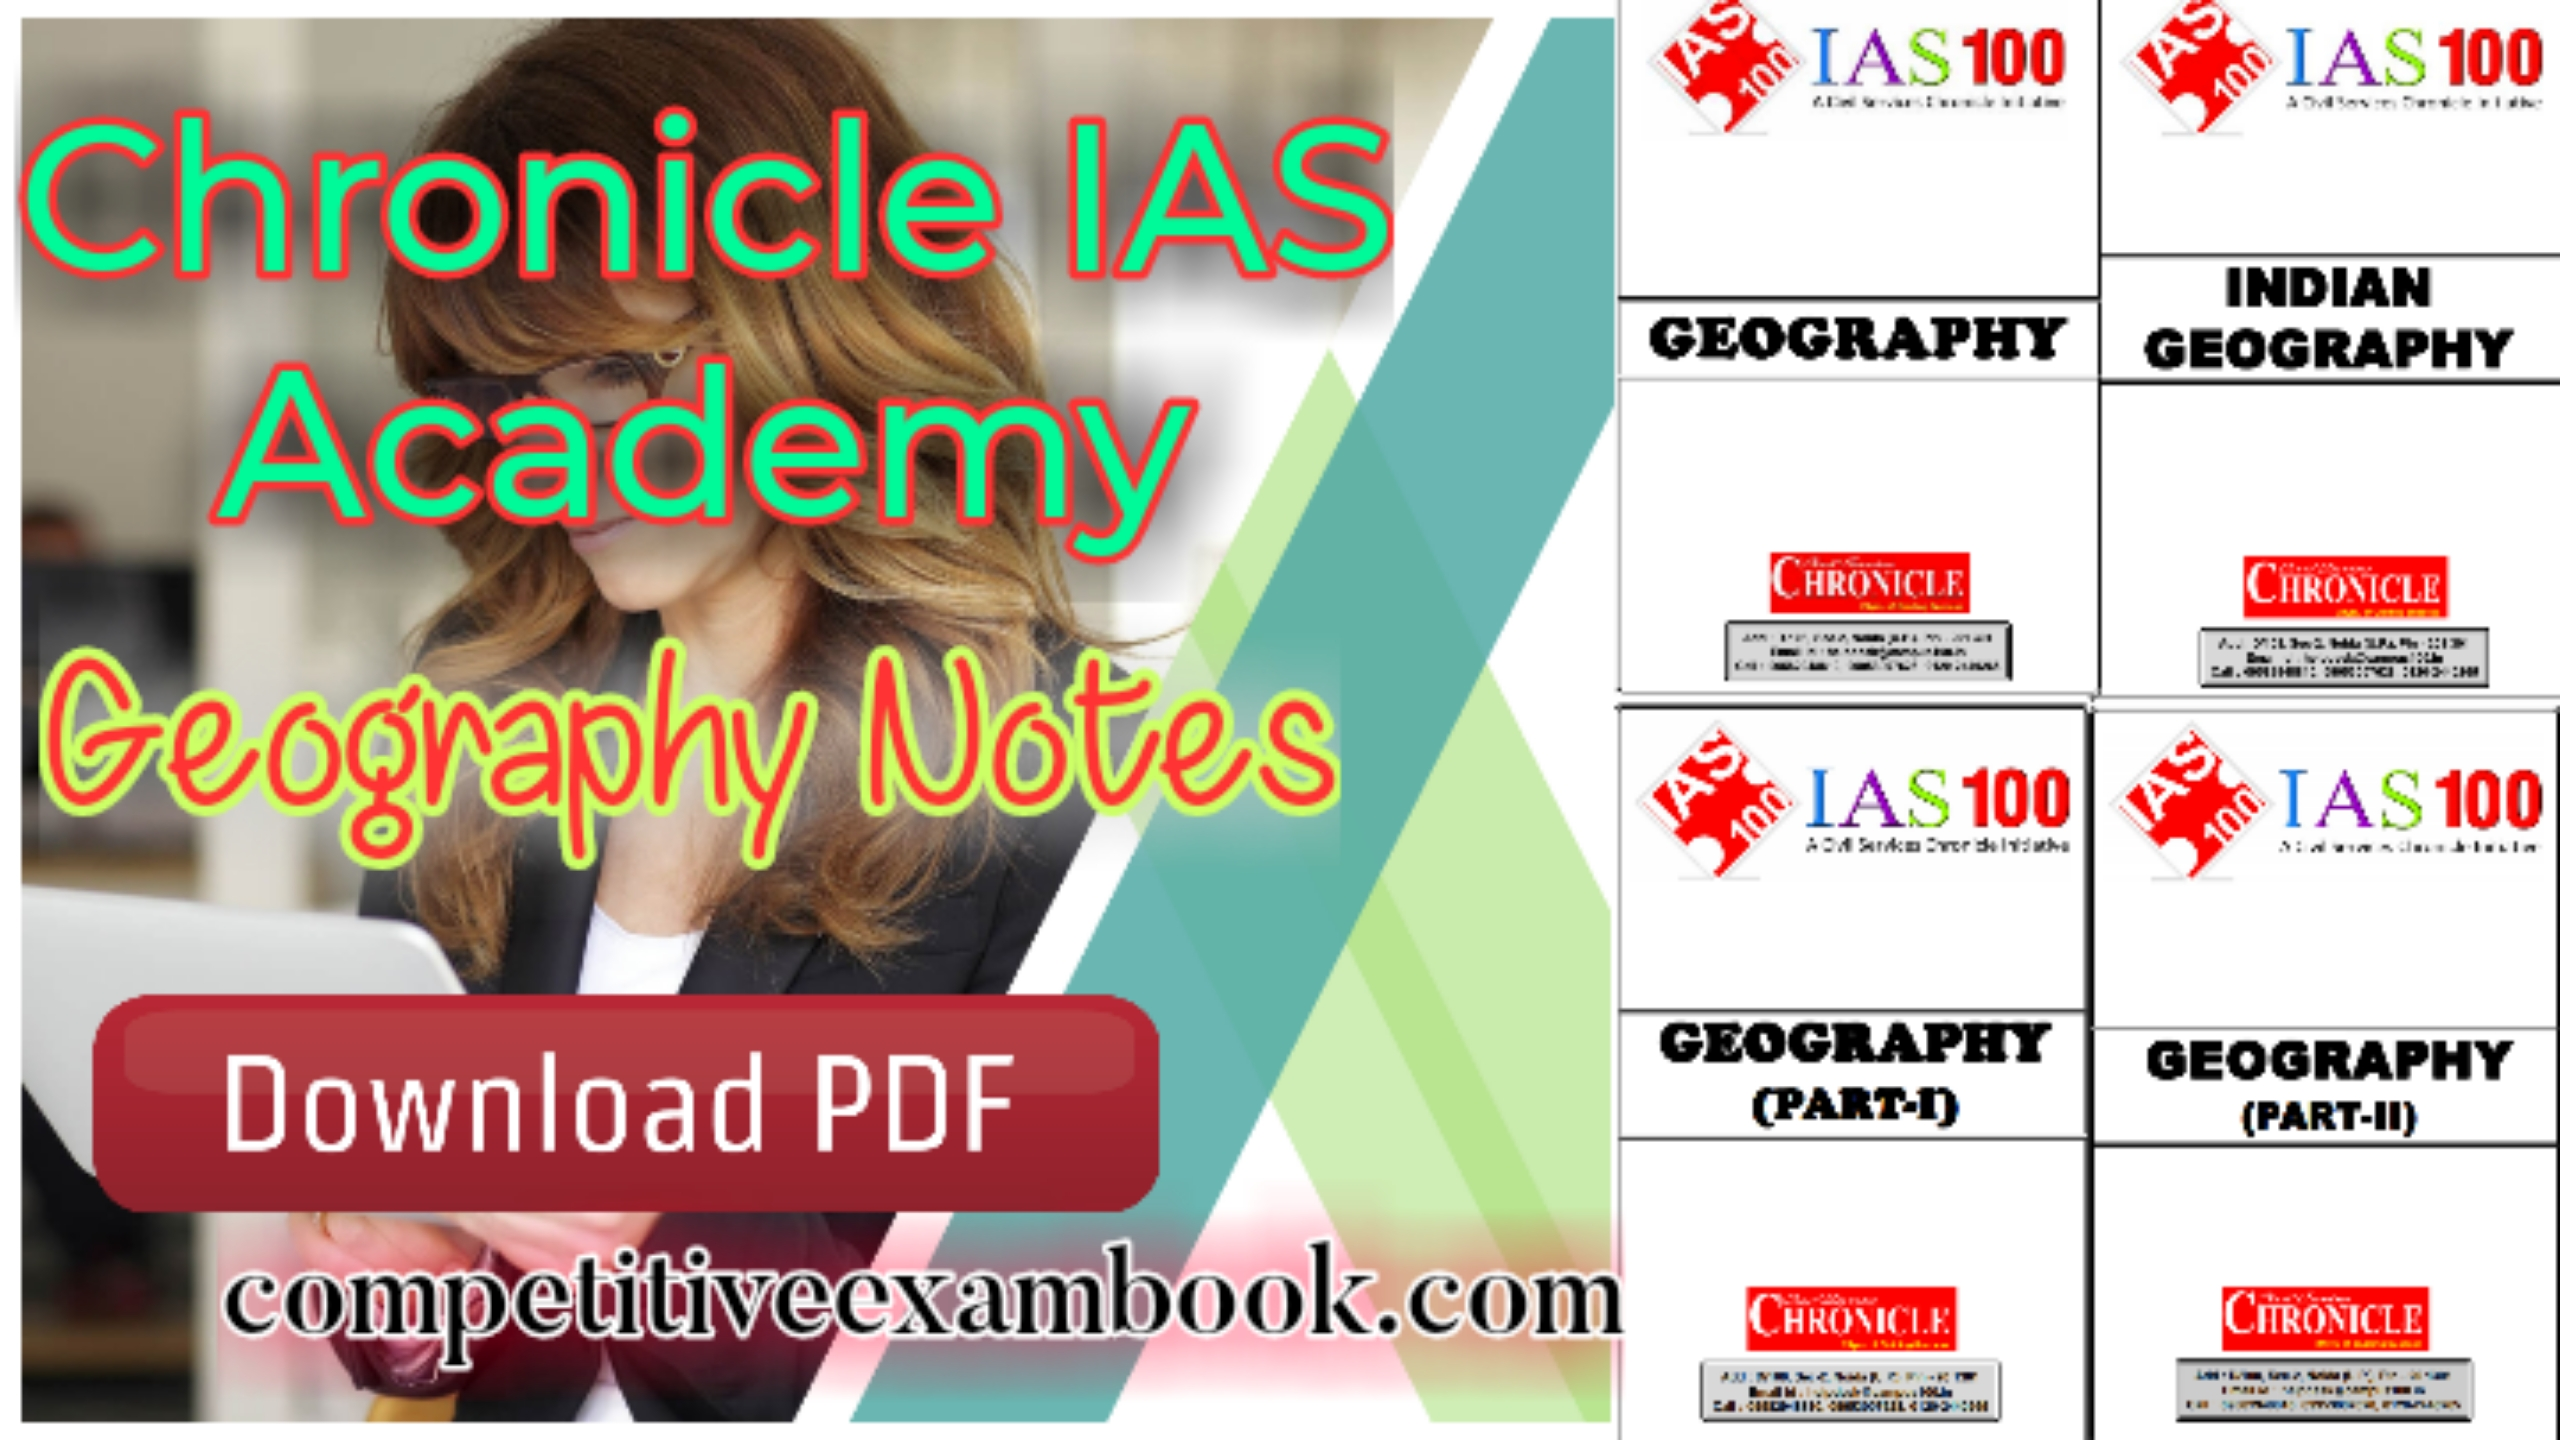 Download Chronicle IAS Academy Notes - VISION